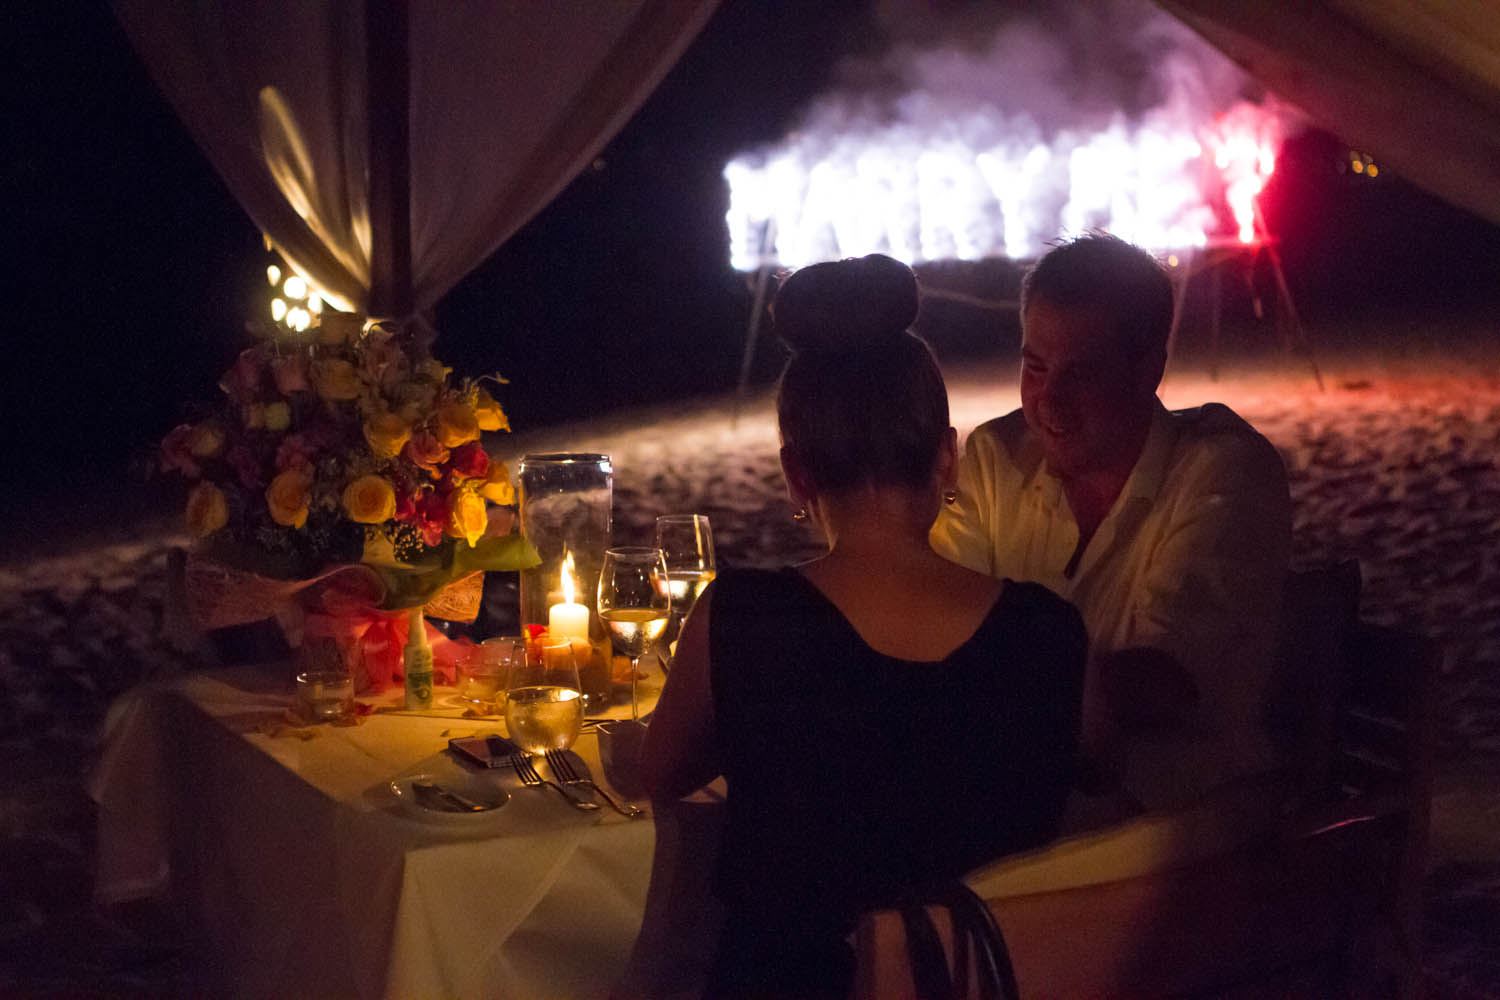 Image 11 of Brina and Rafael | Engaged in Thailand